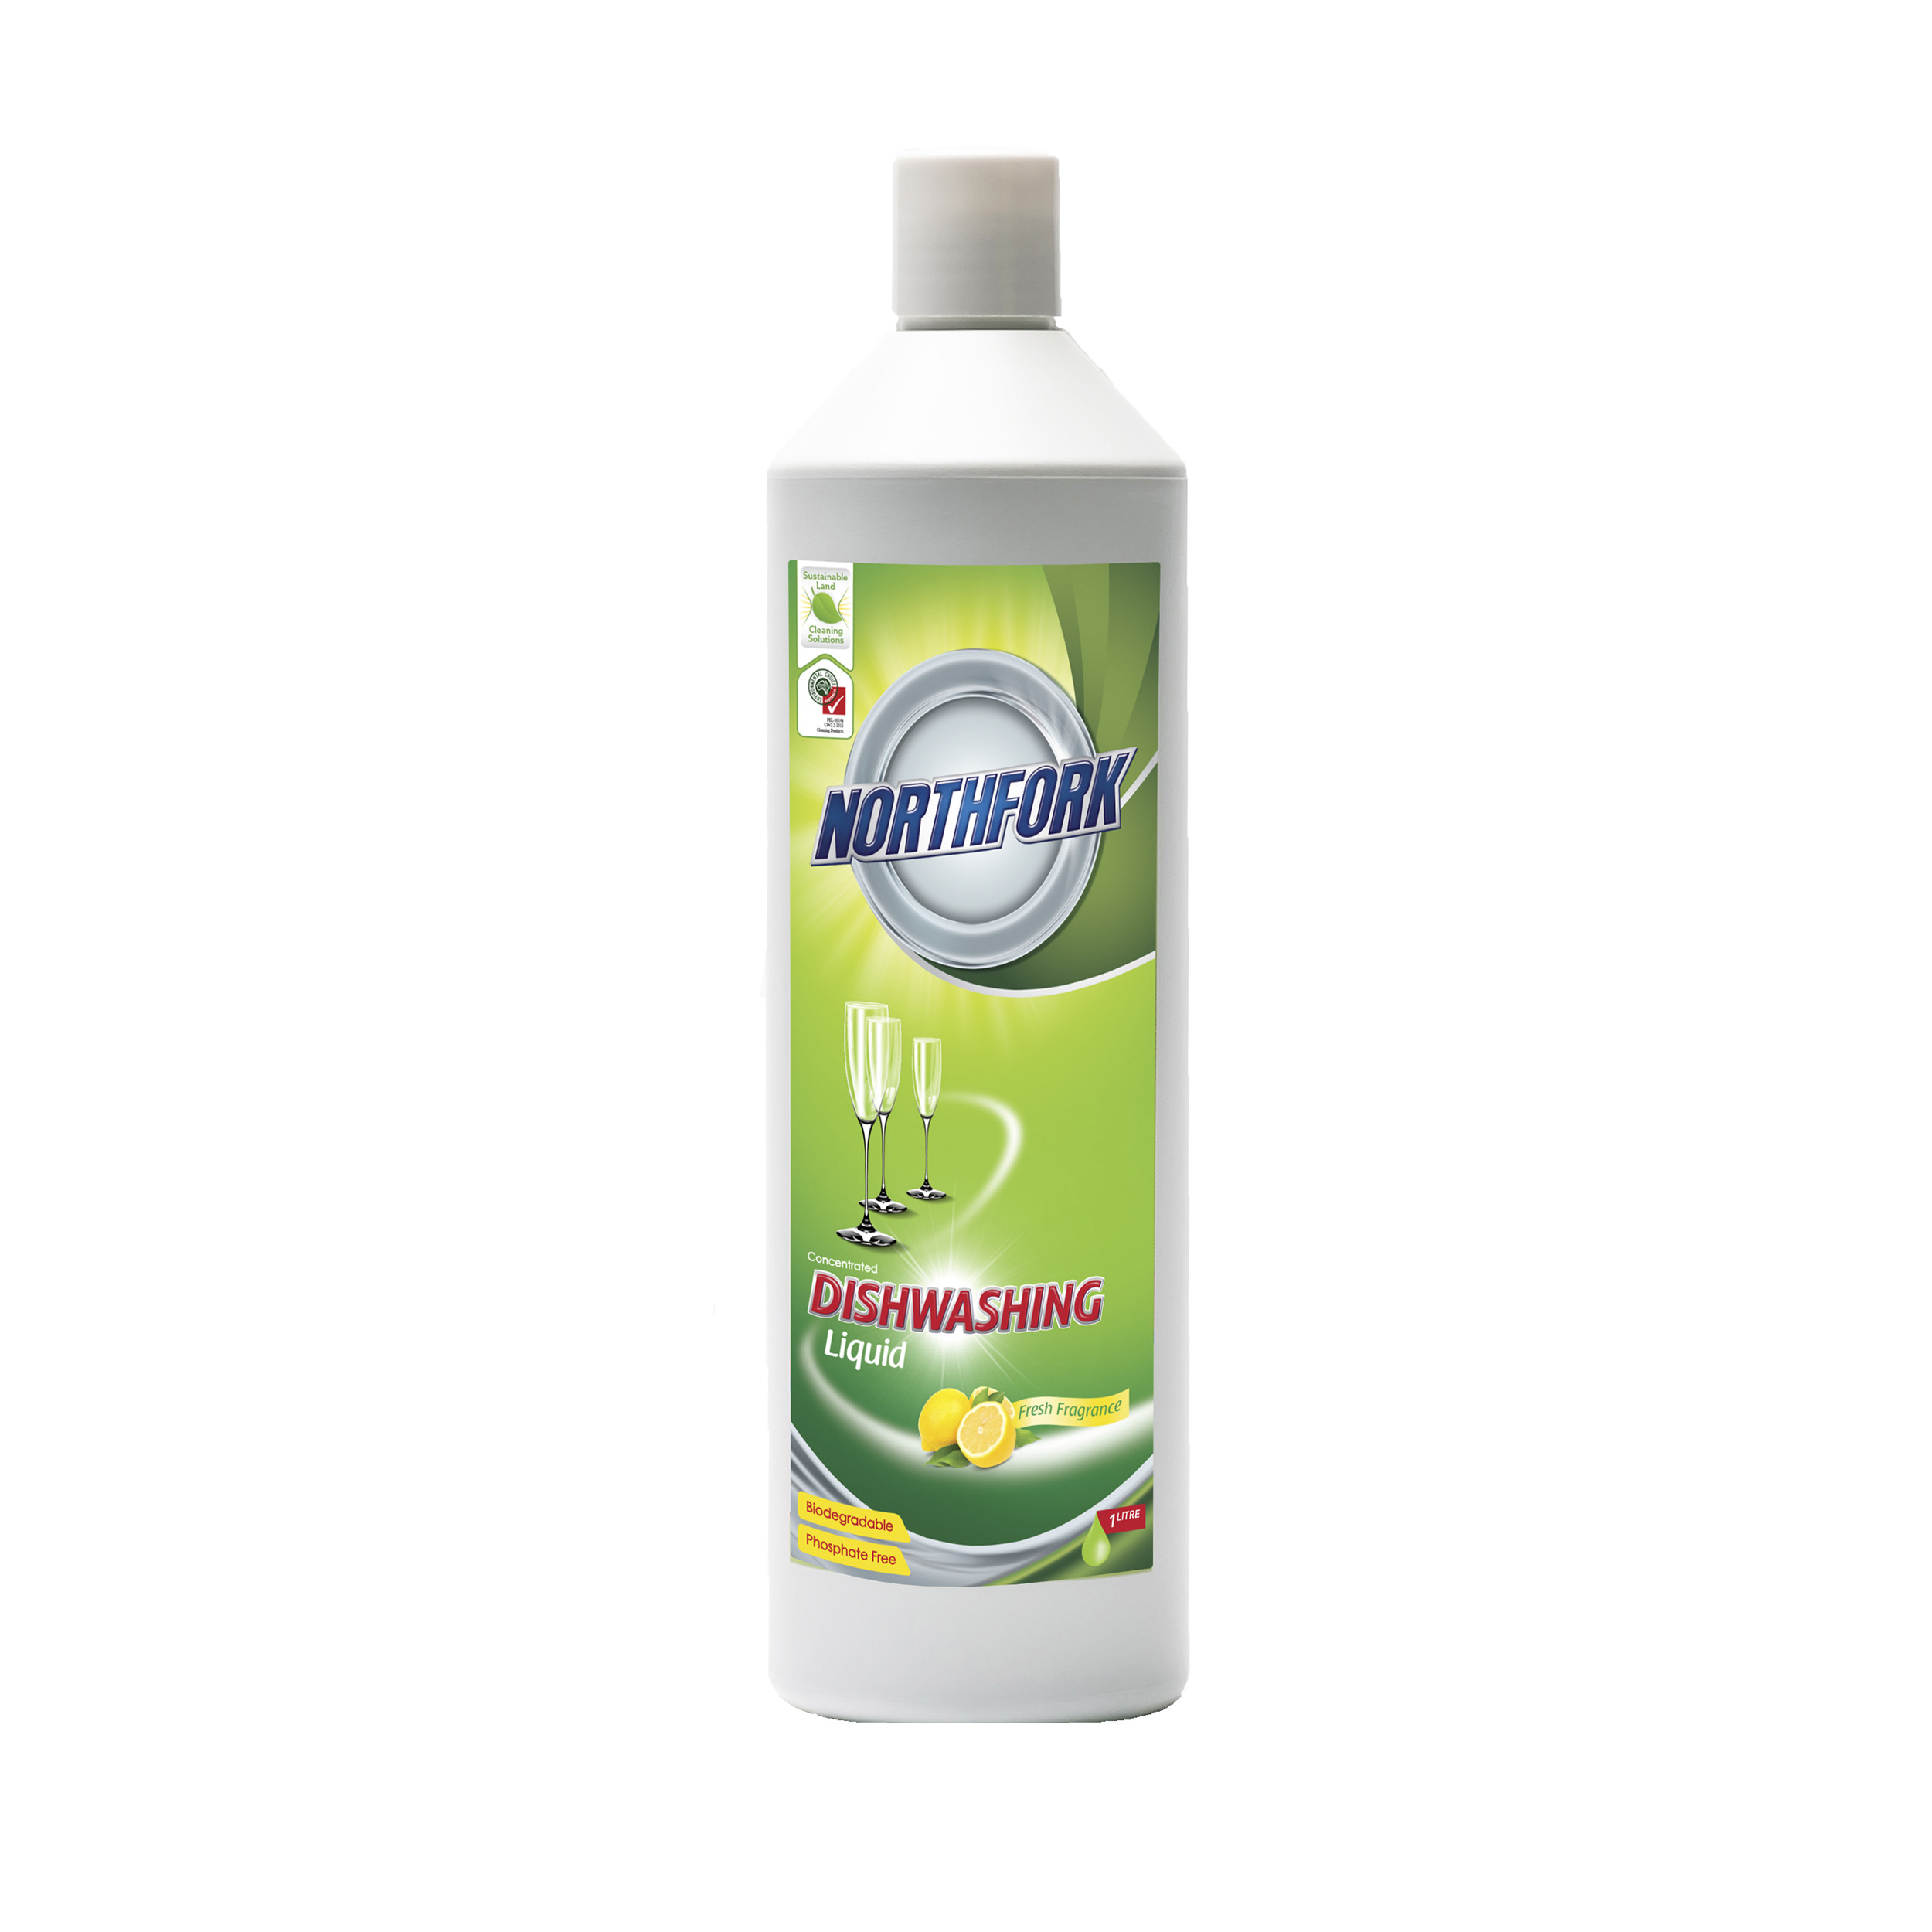 Northfork GECA Dishwashing Liquid